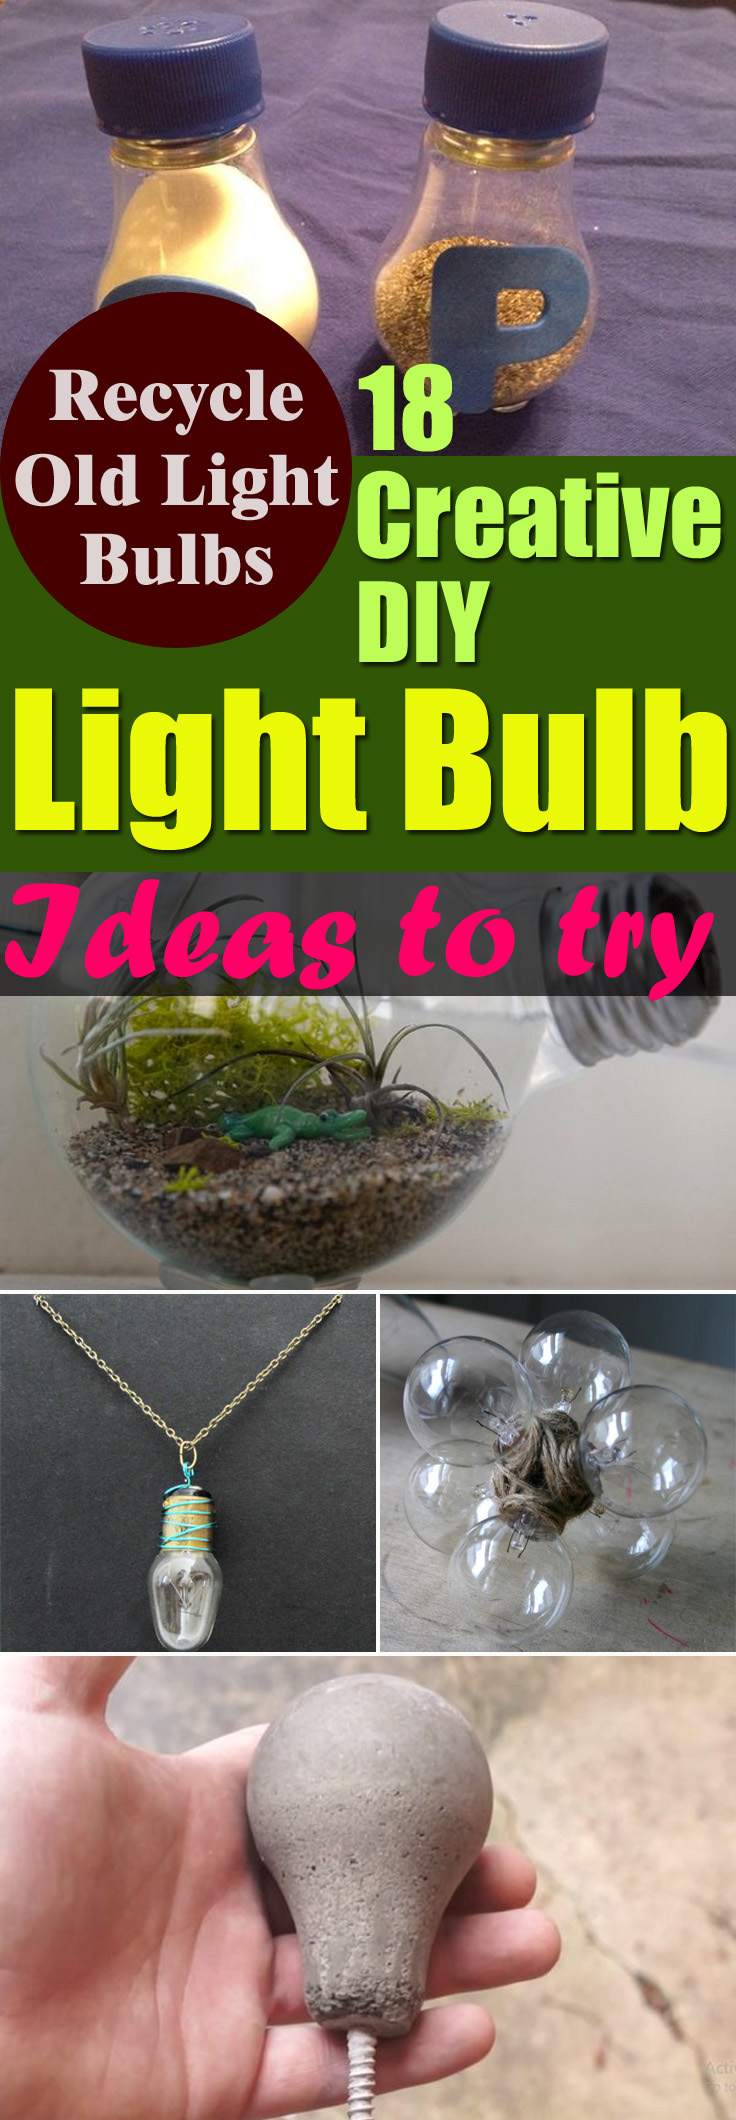 Recycle old light bulbs into something useful and beautiful, following the 18 creative DIY Light Bulb Ideas available with their tutorials.